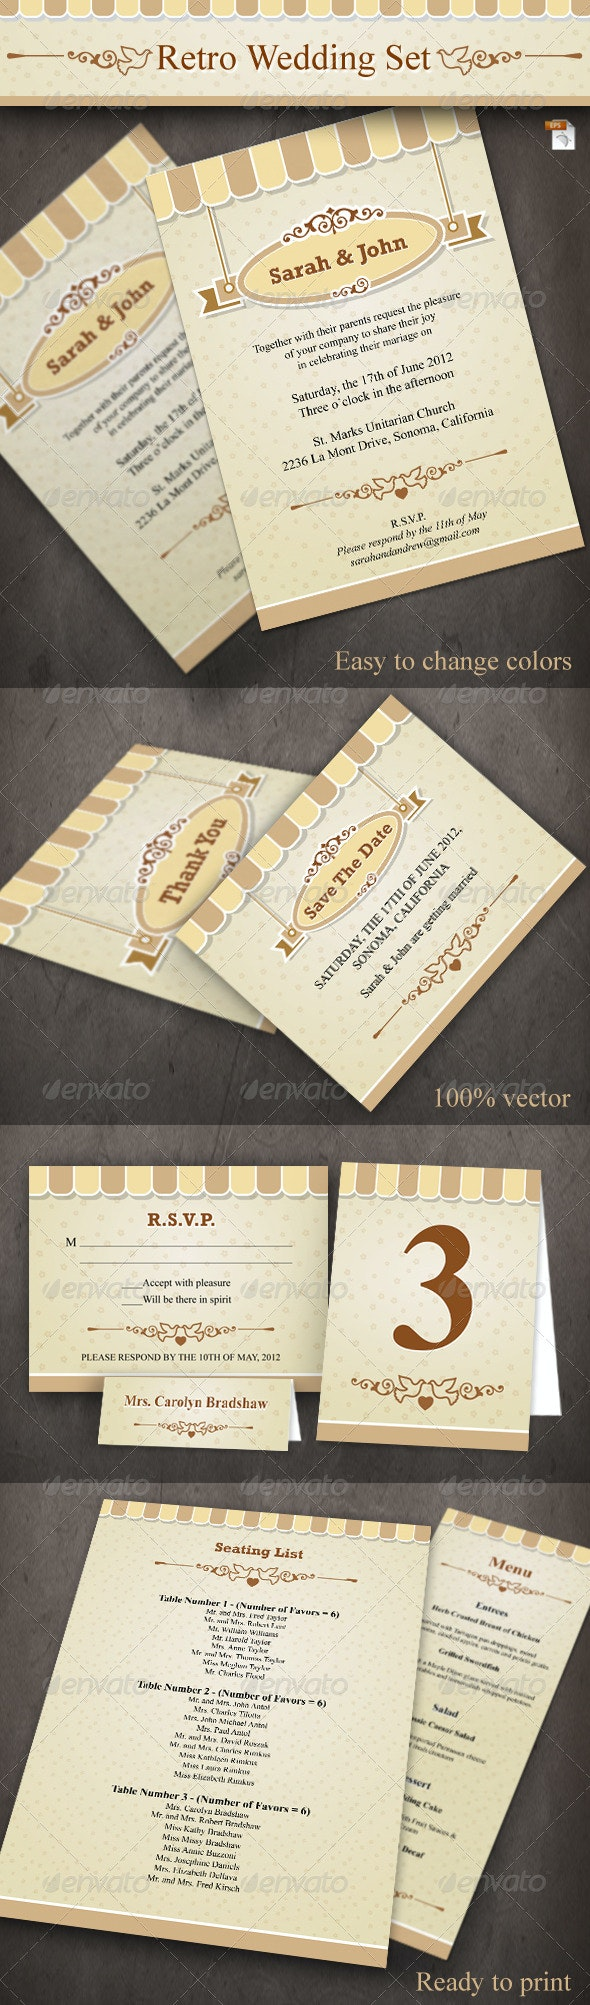 Retro Wedding Set - Weddings Cards & Invites